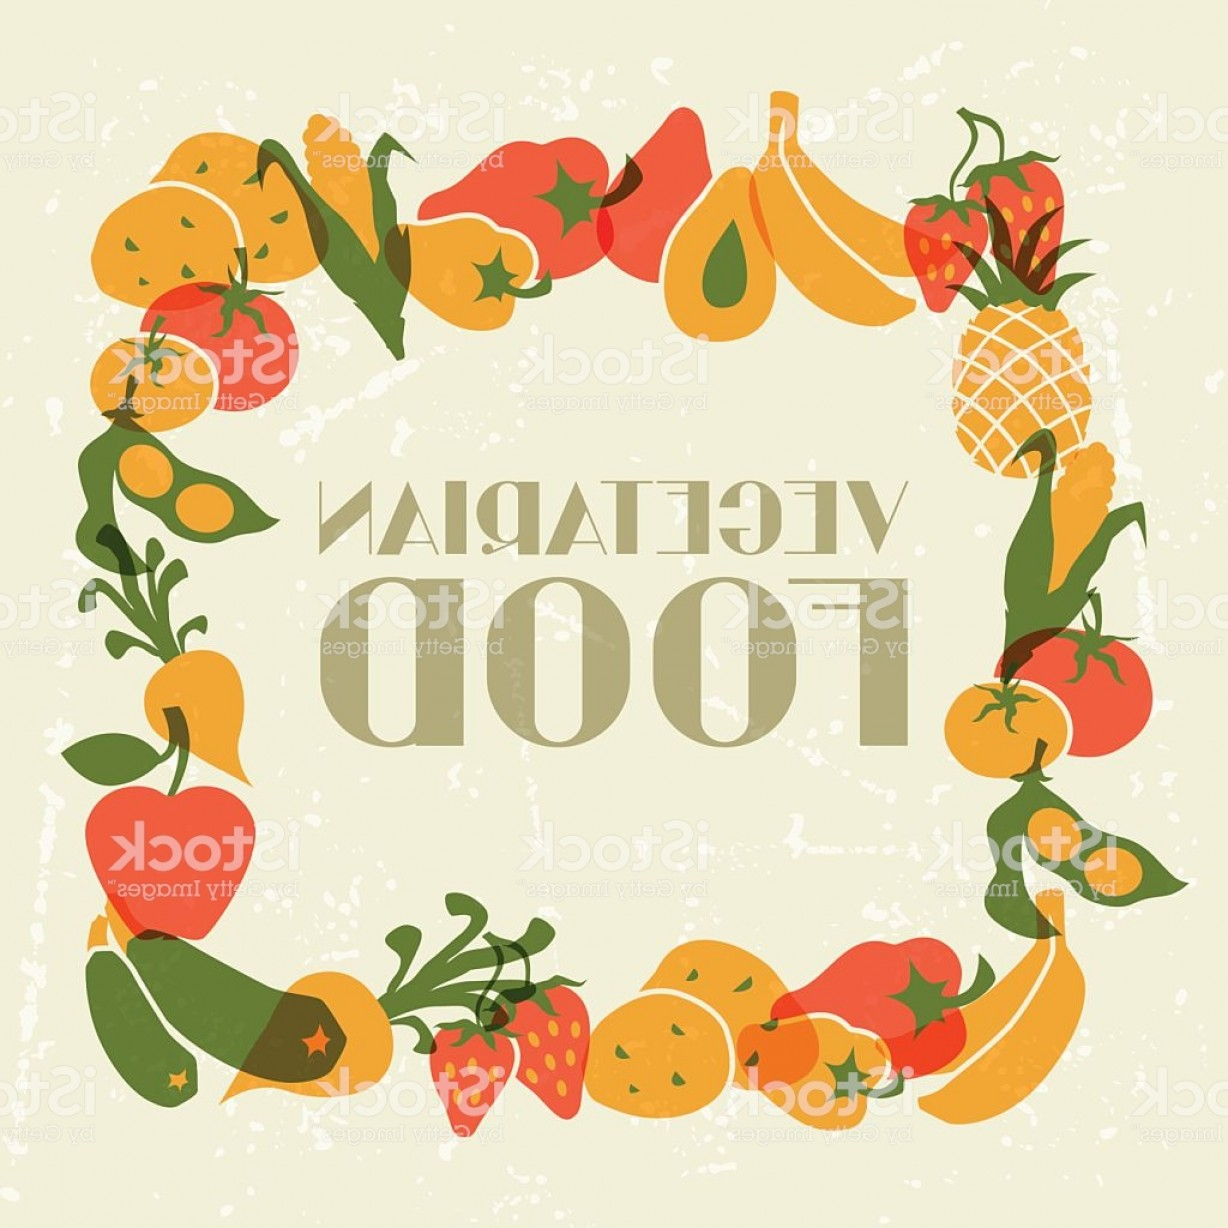 Food Vectors 50 S: Vegetarian Food Background Design With Stylized Vegetables Gm